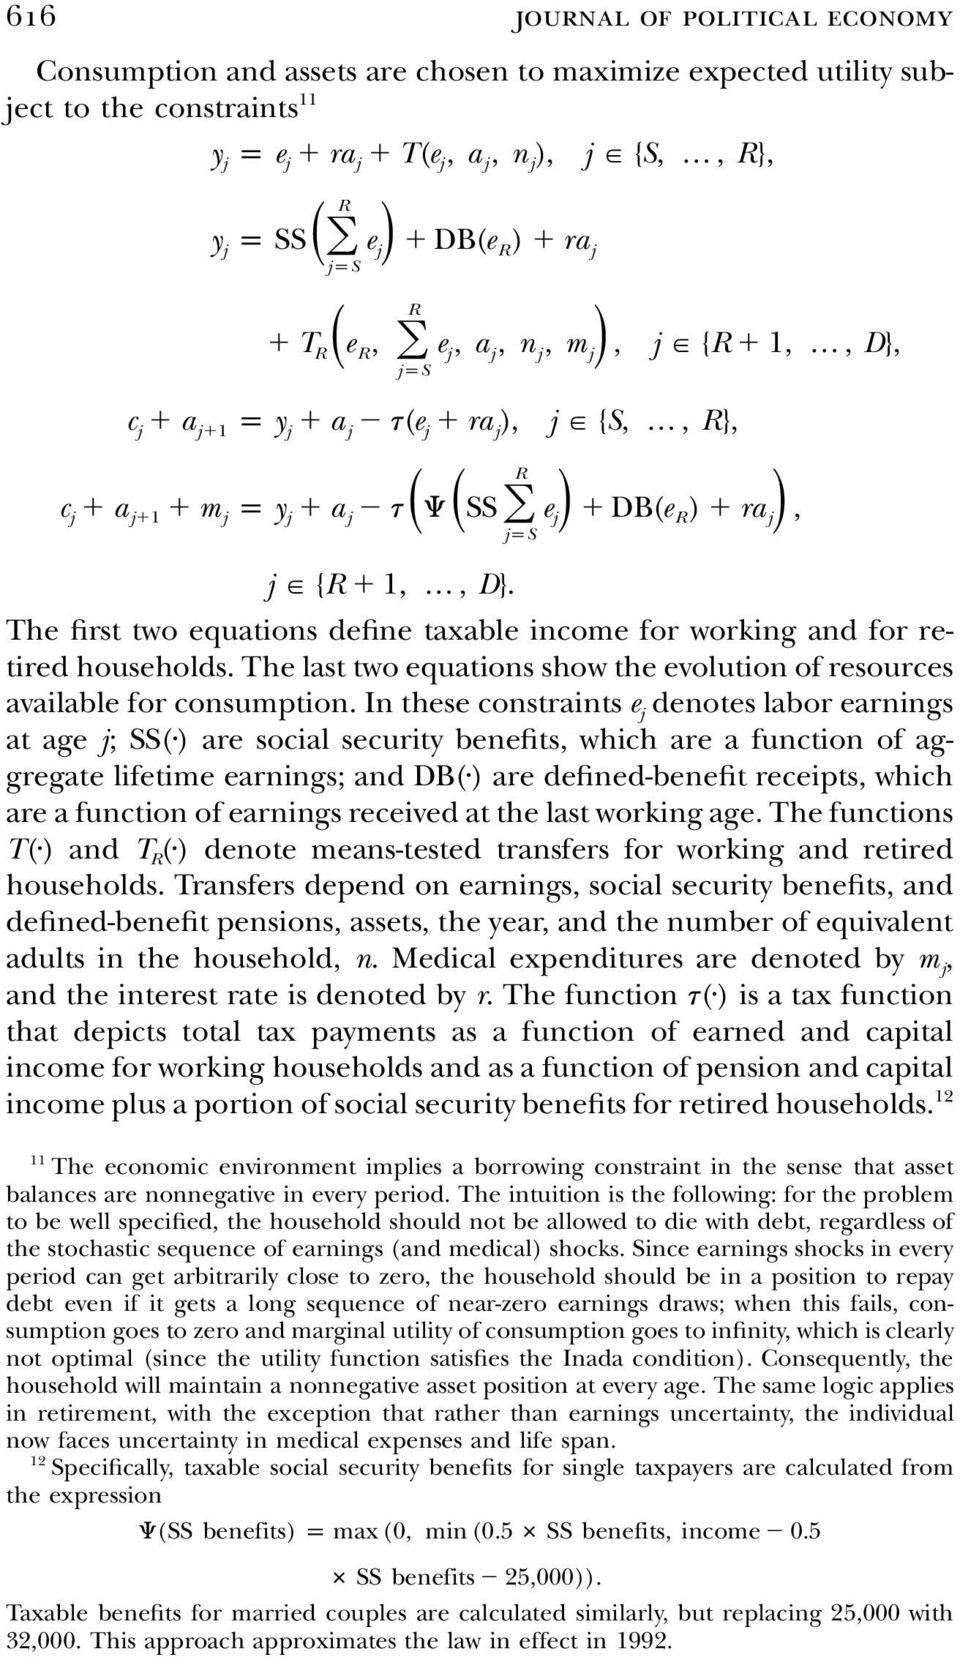 The first two equations define taxable income for working and for retired households. The last two equations show the evolution of resources available for consumption.